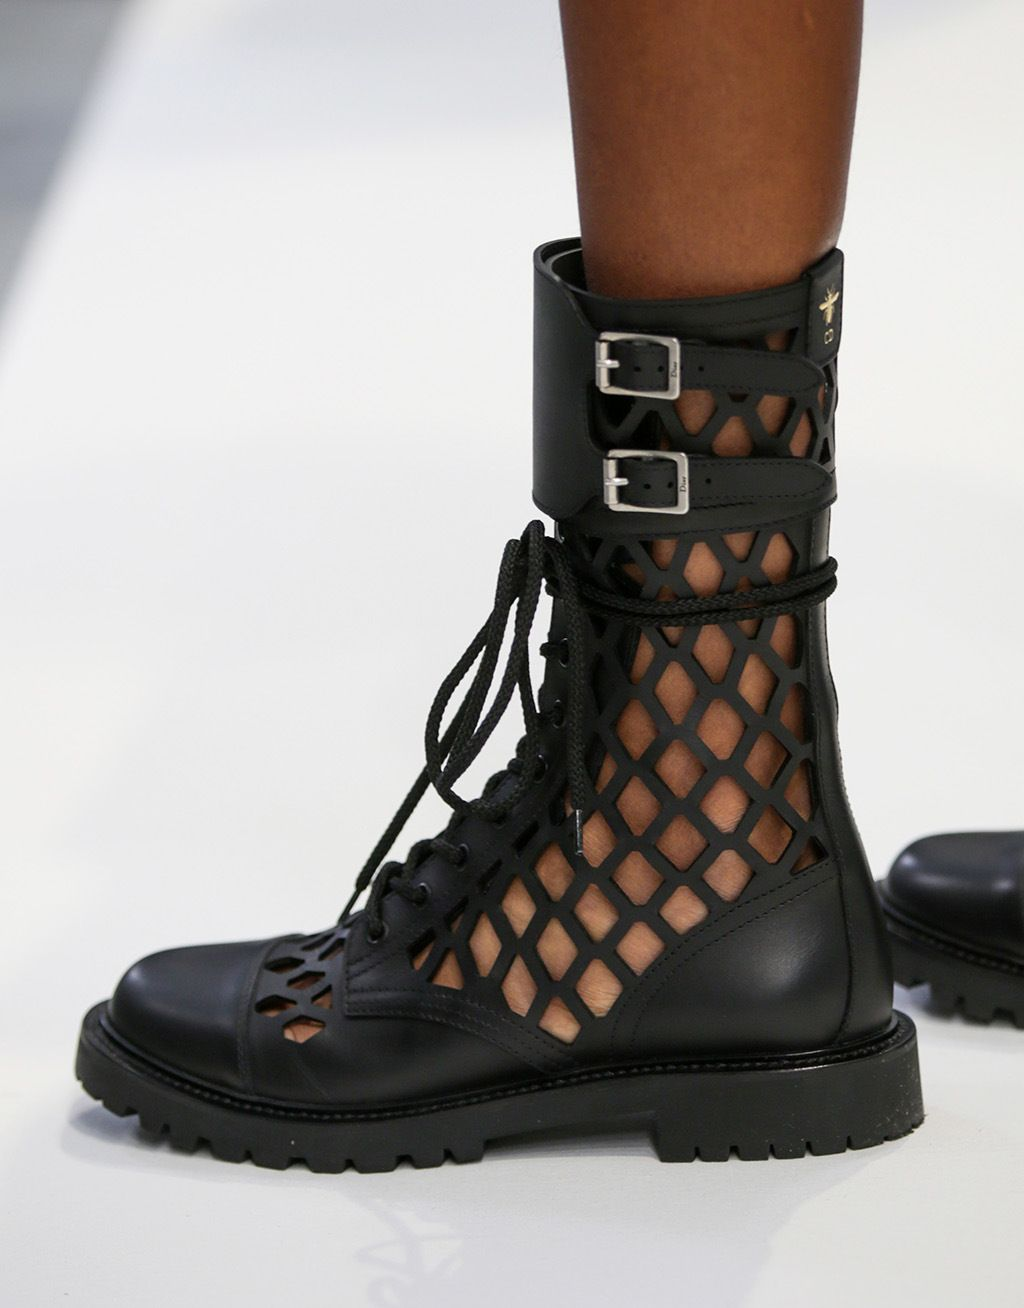 Pin on Chic Women's Boots